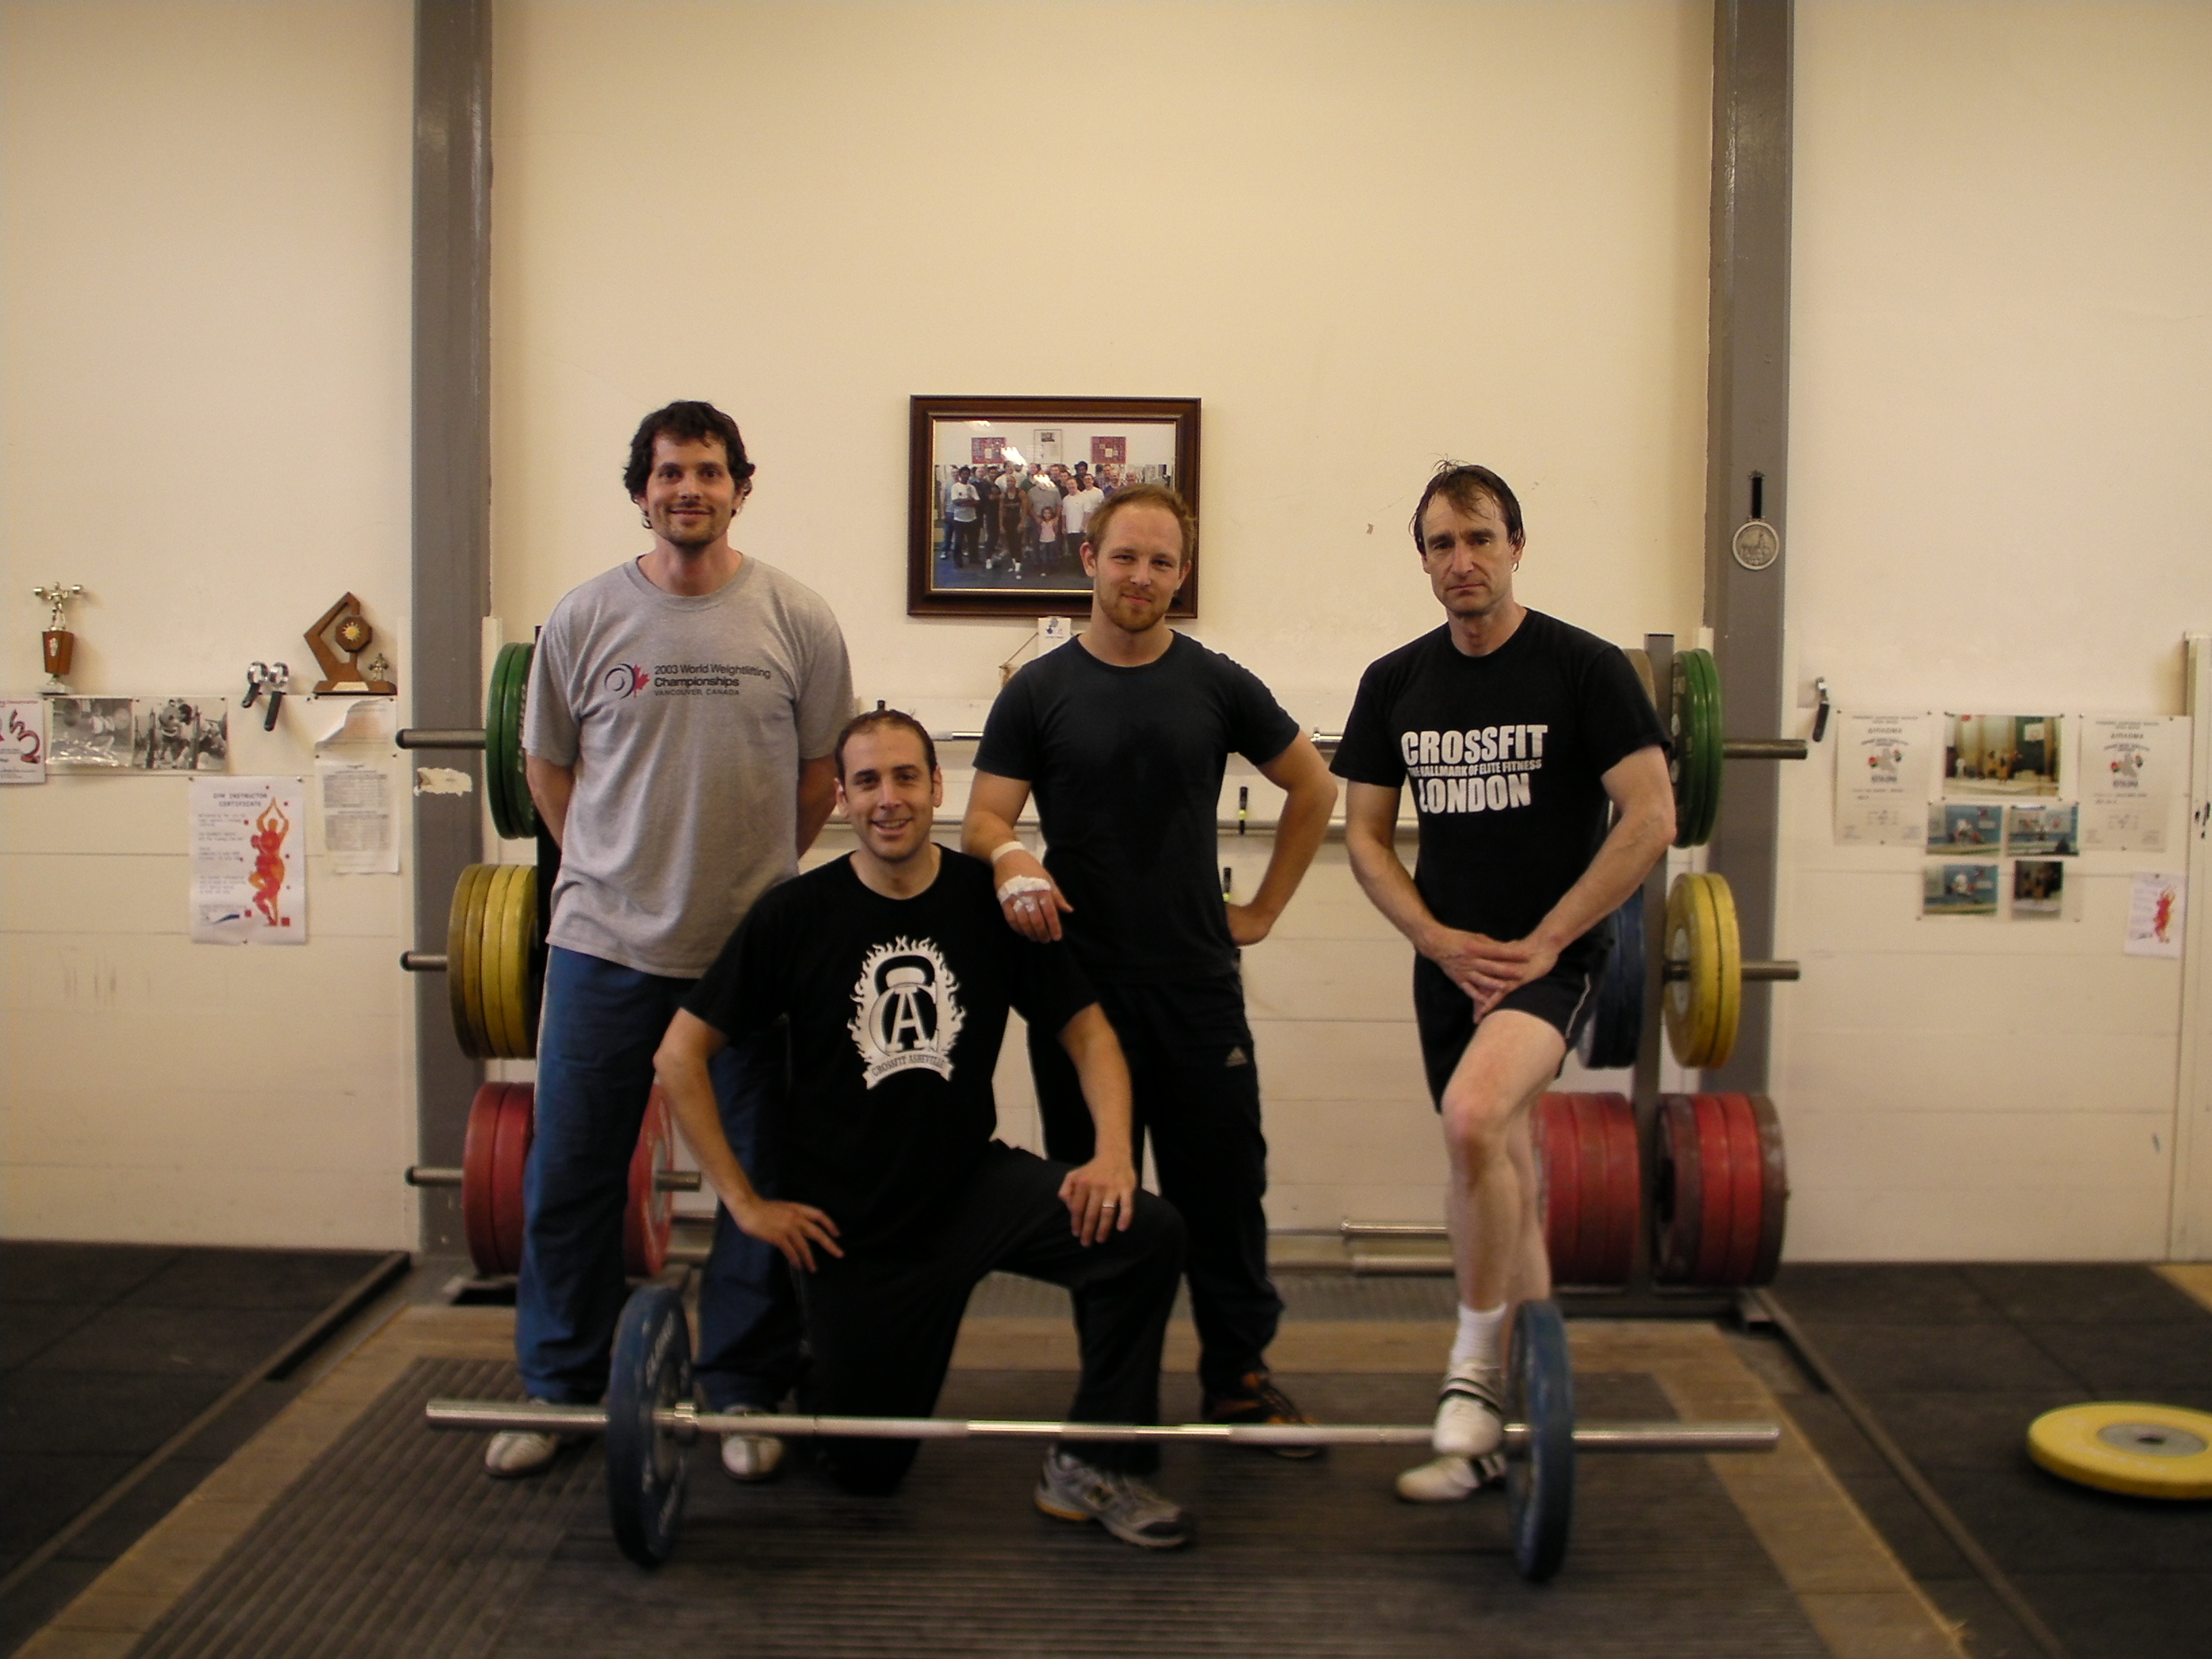 Giles Greenwood, Me, a london CrossFitter, and Andrew Stemler